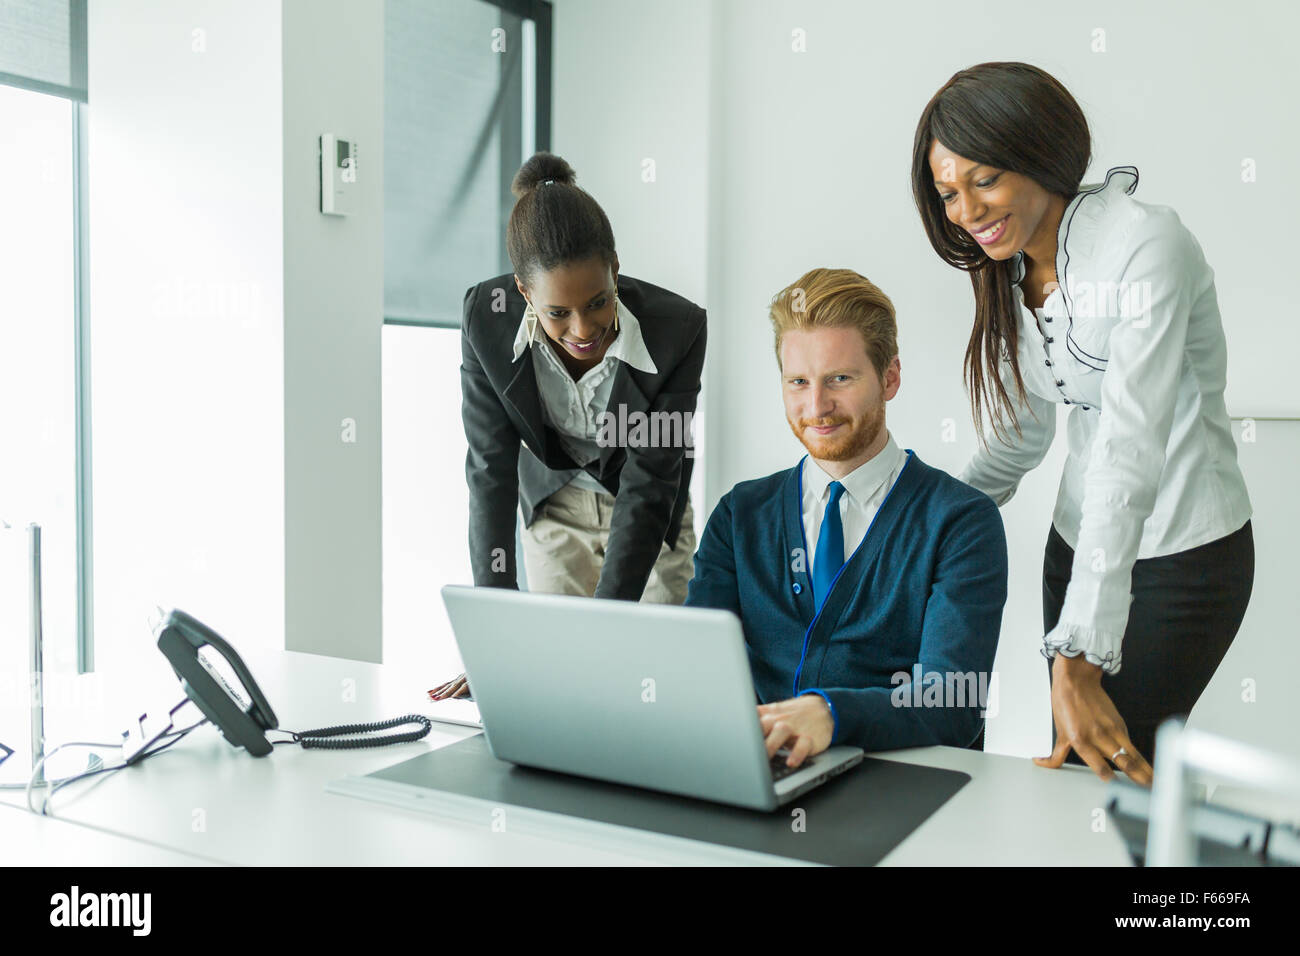 Business people talking and smiling in an office in front of a notebook - Stock Image